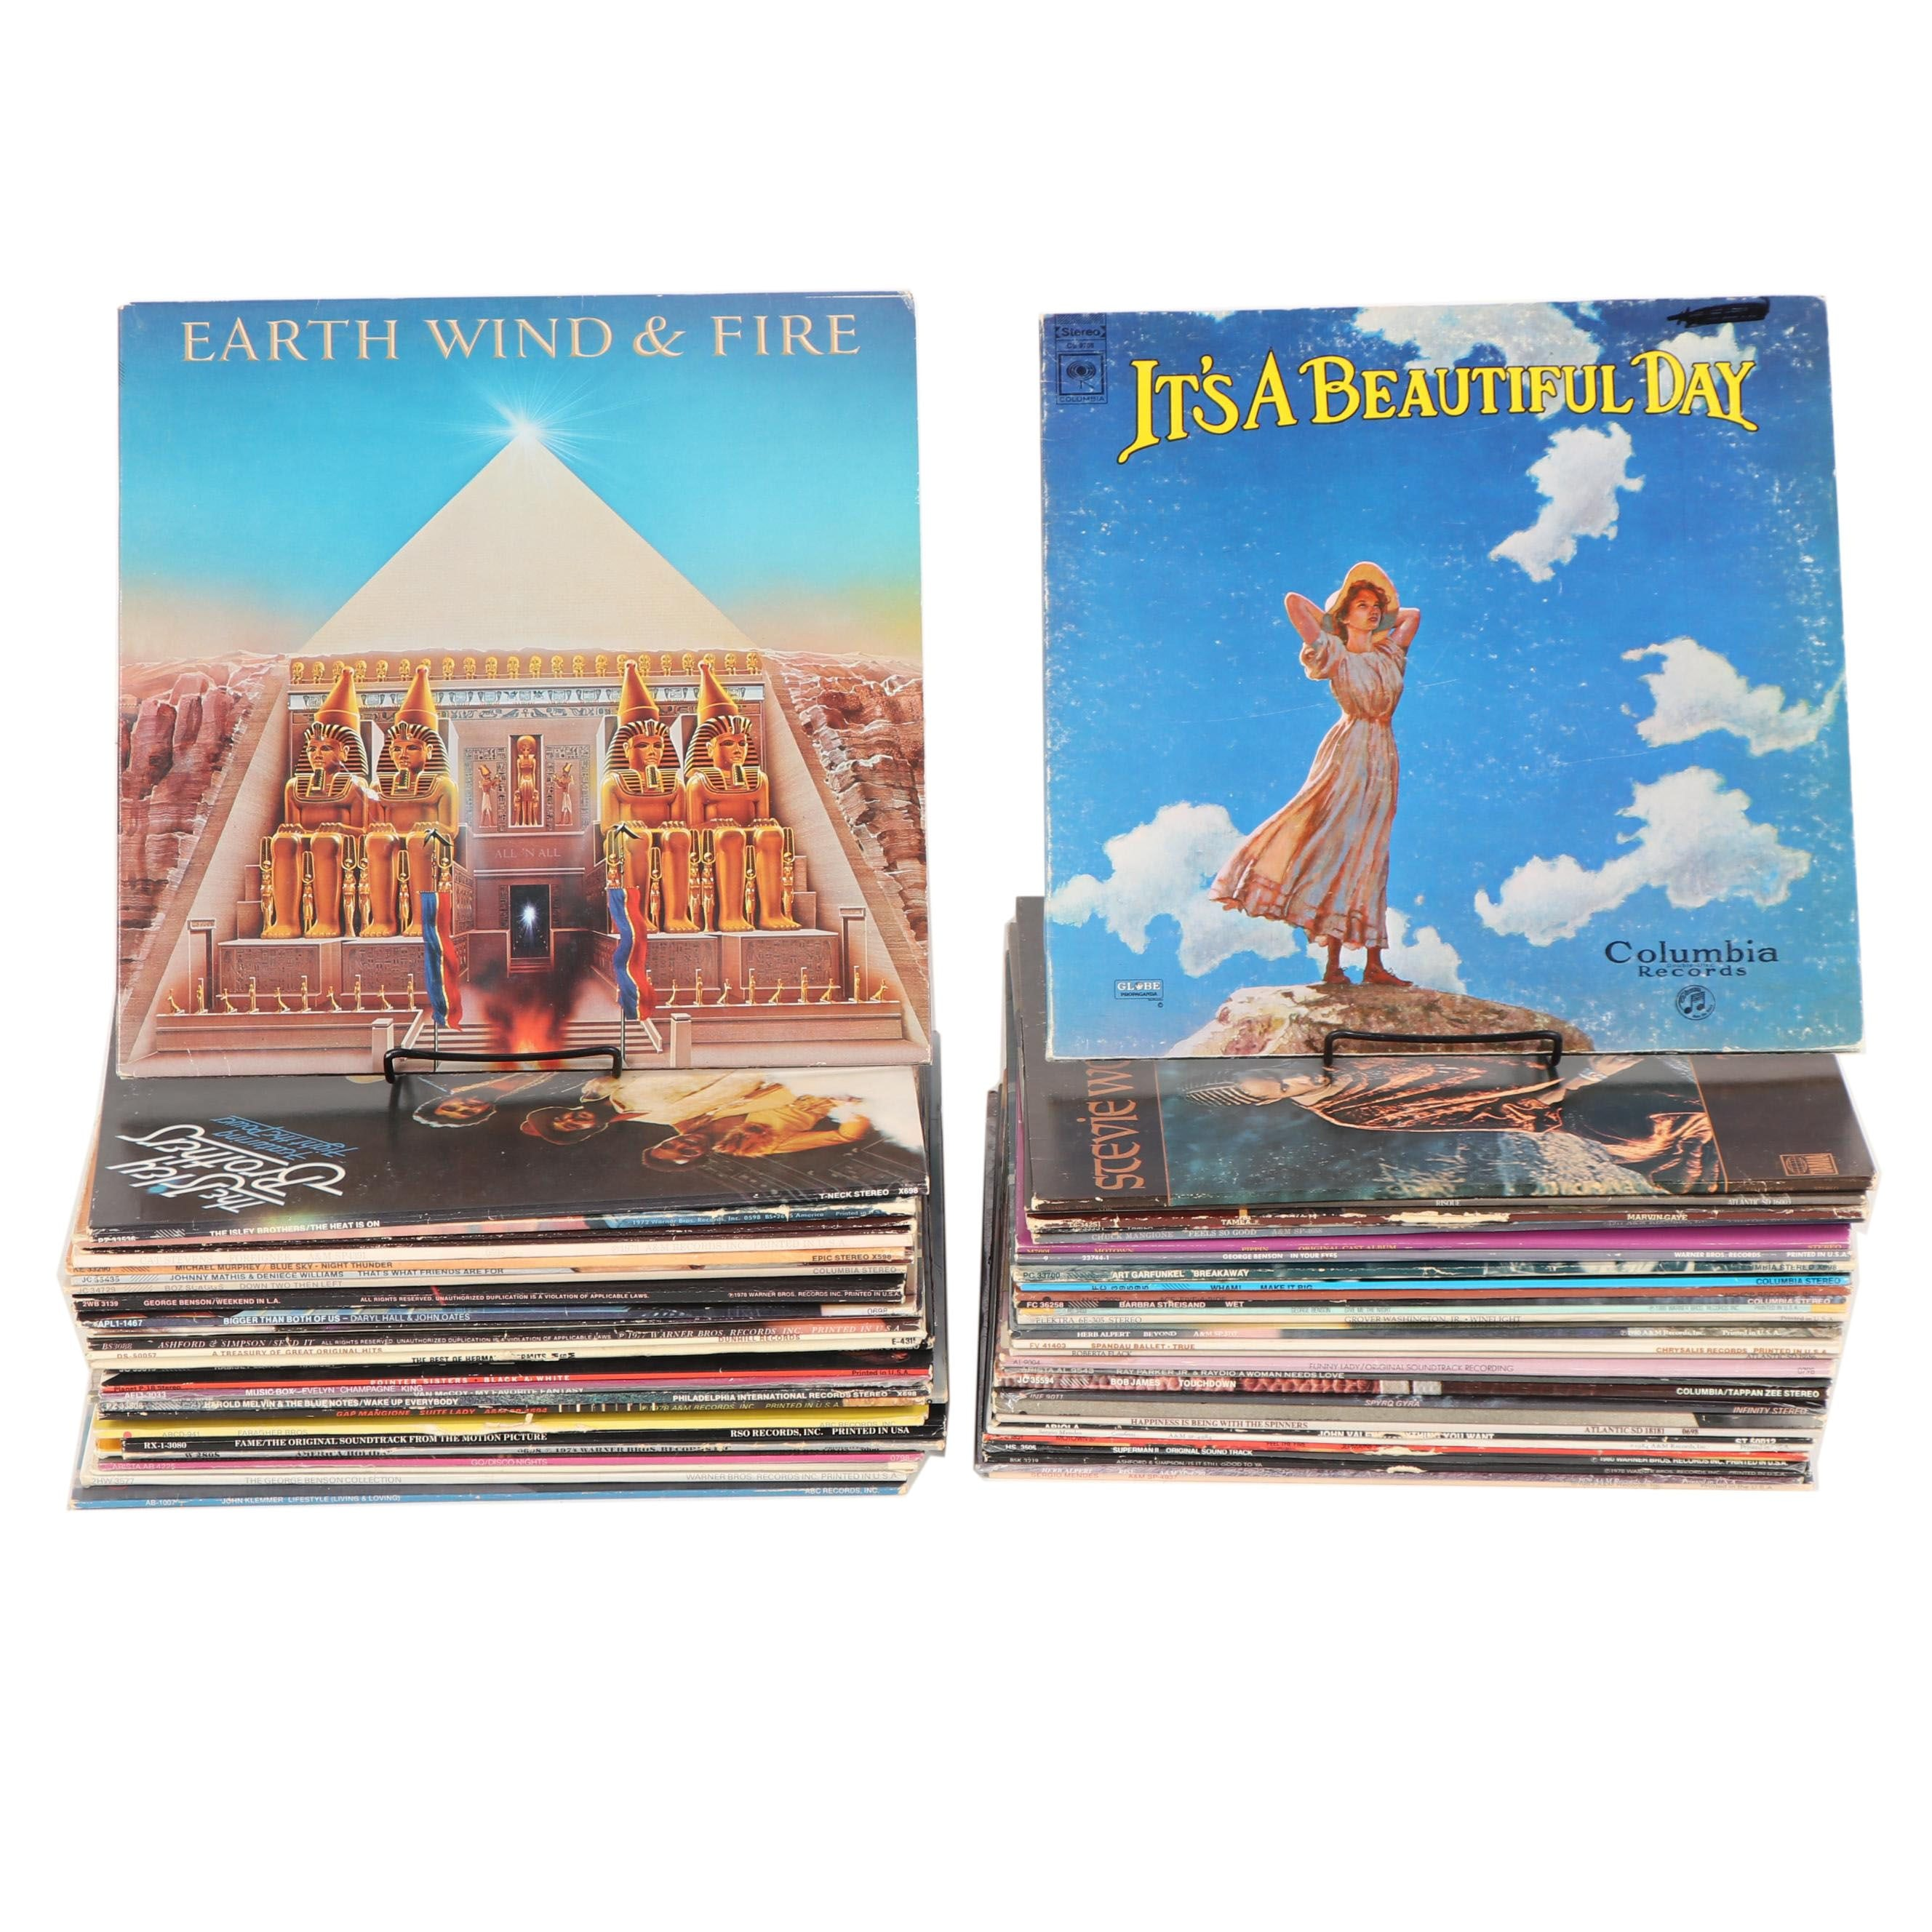 1970s-1980s R&B and Pop Records including Earth, Wind & Fire